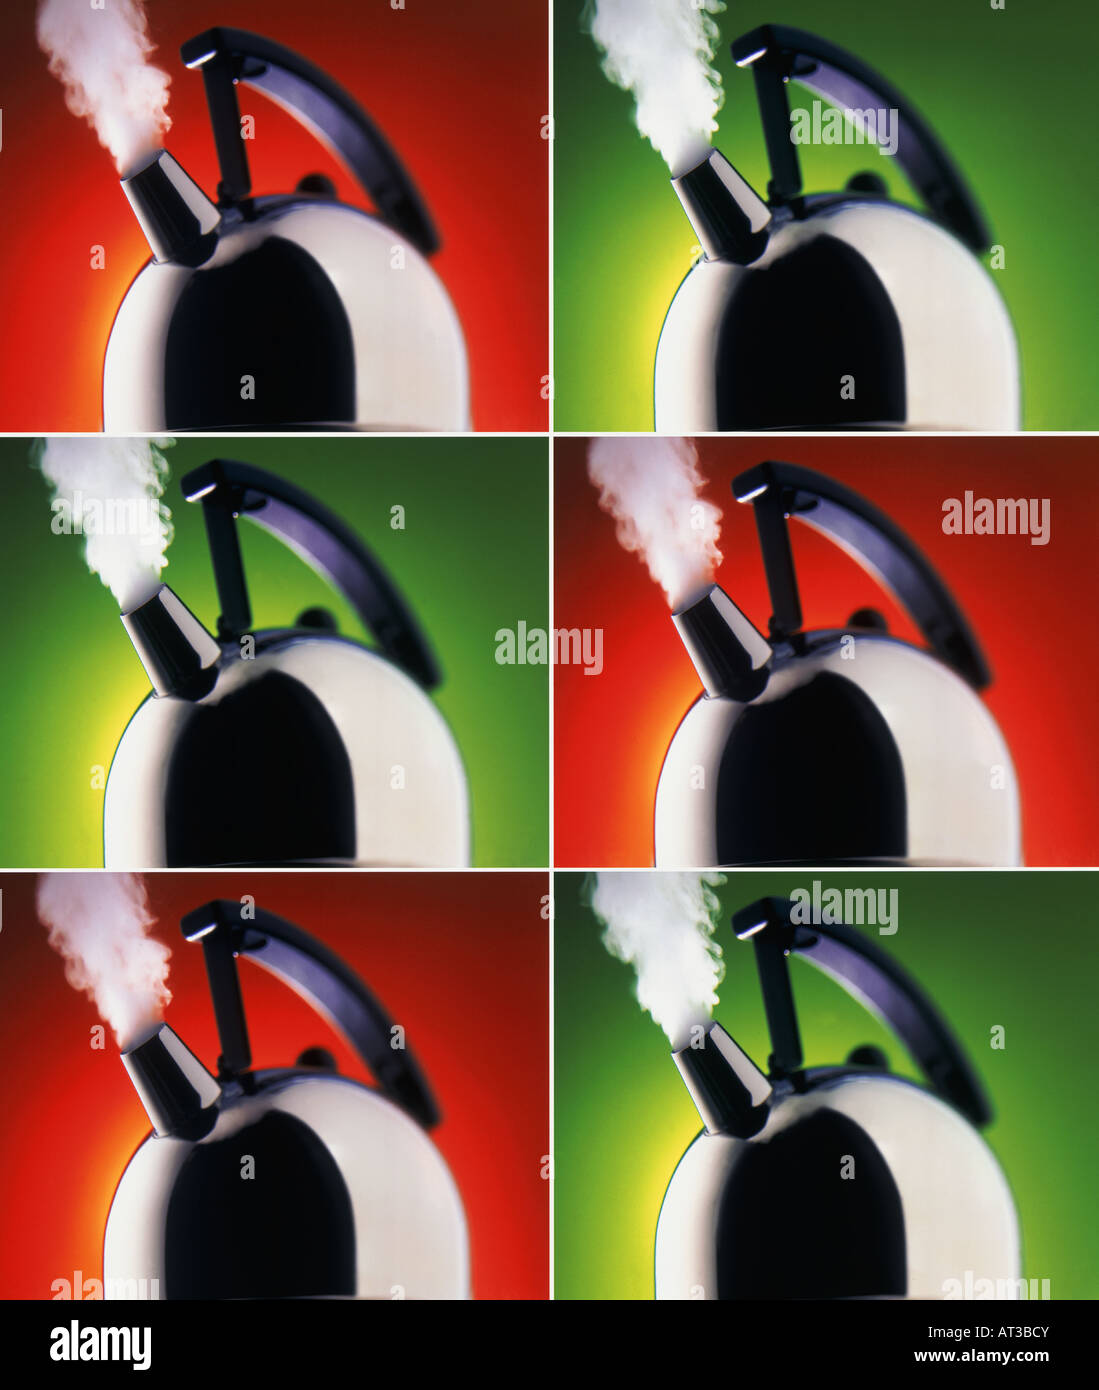 Kettles letting off steam, series - Stock Image